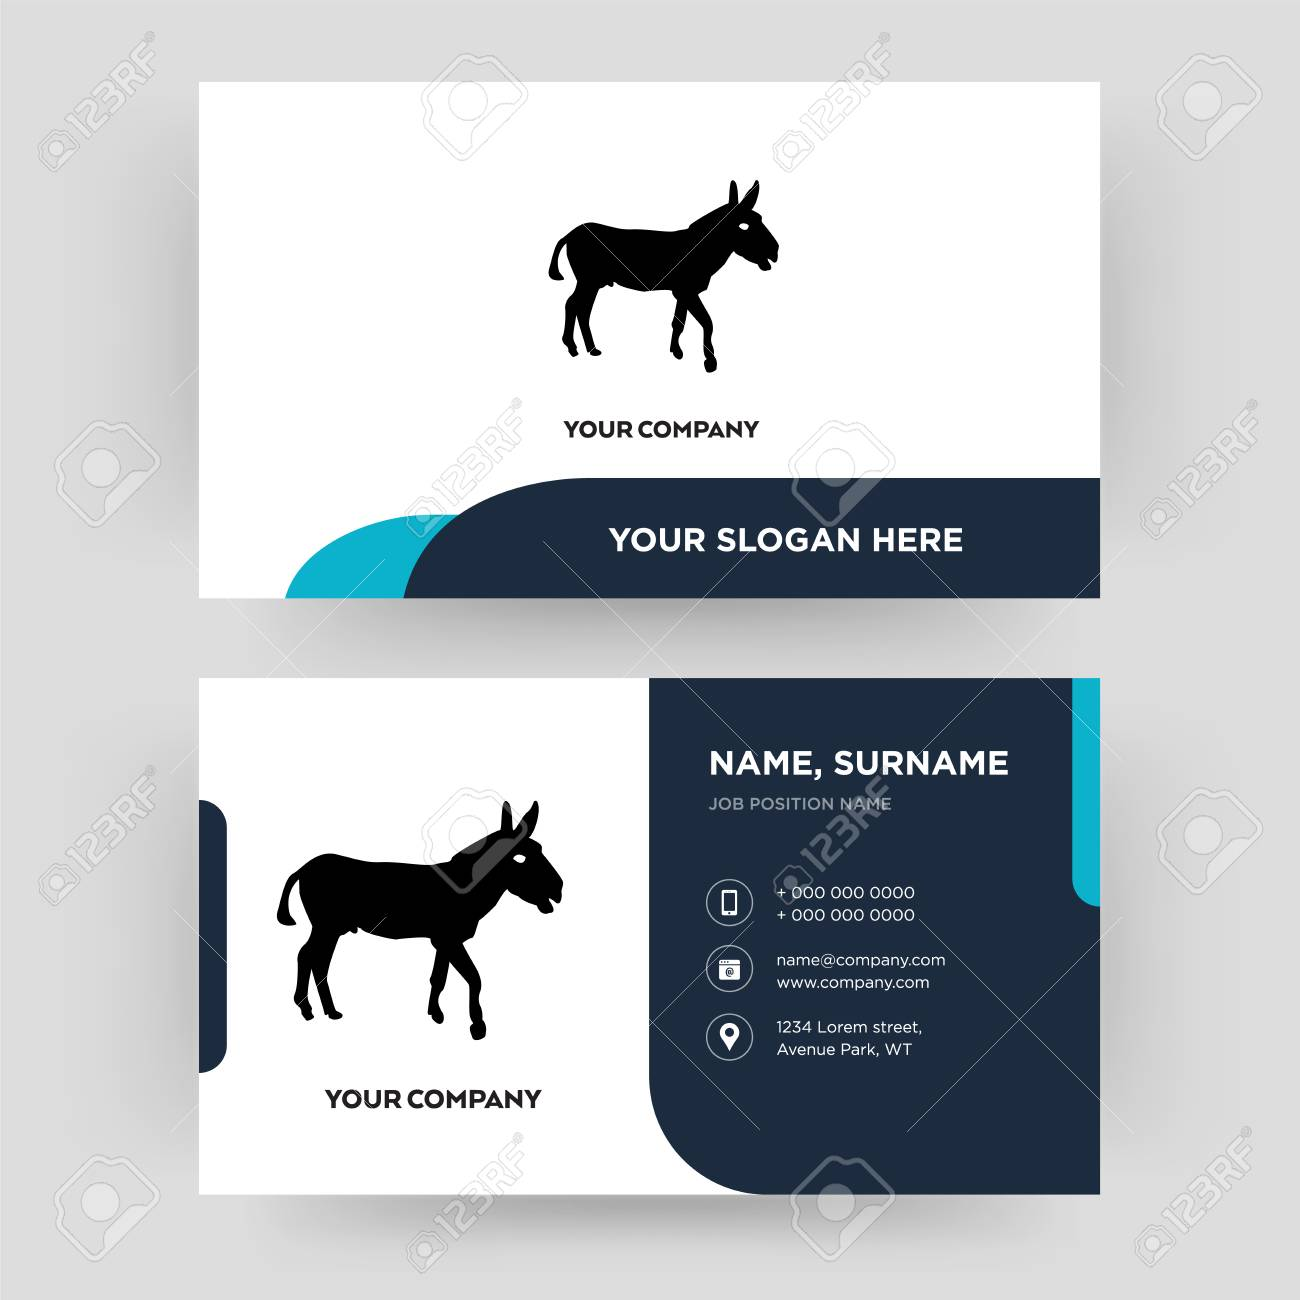 Donkey, Business Card Design Template, Visiting For Your Company ...